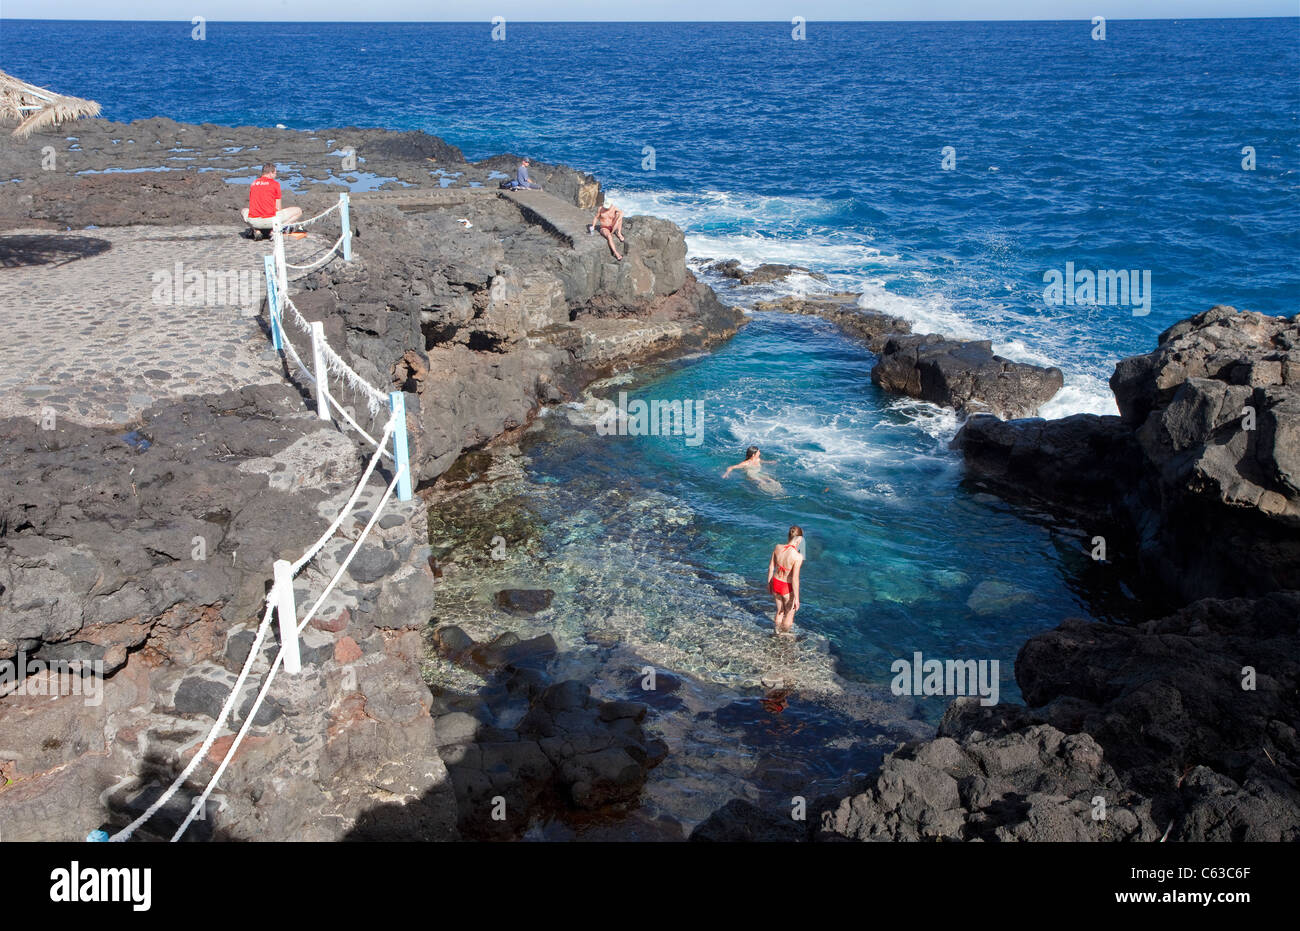 People at natural pool of San Andres, La Palma, Canary islands, Spain, Europe - Stock Image